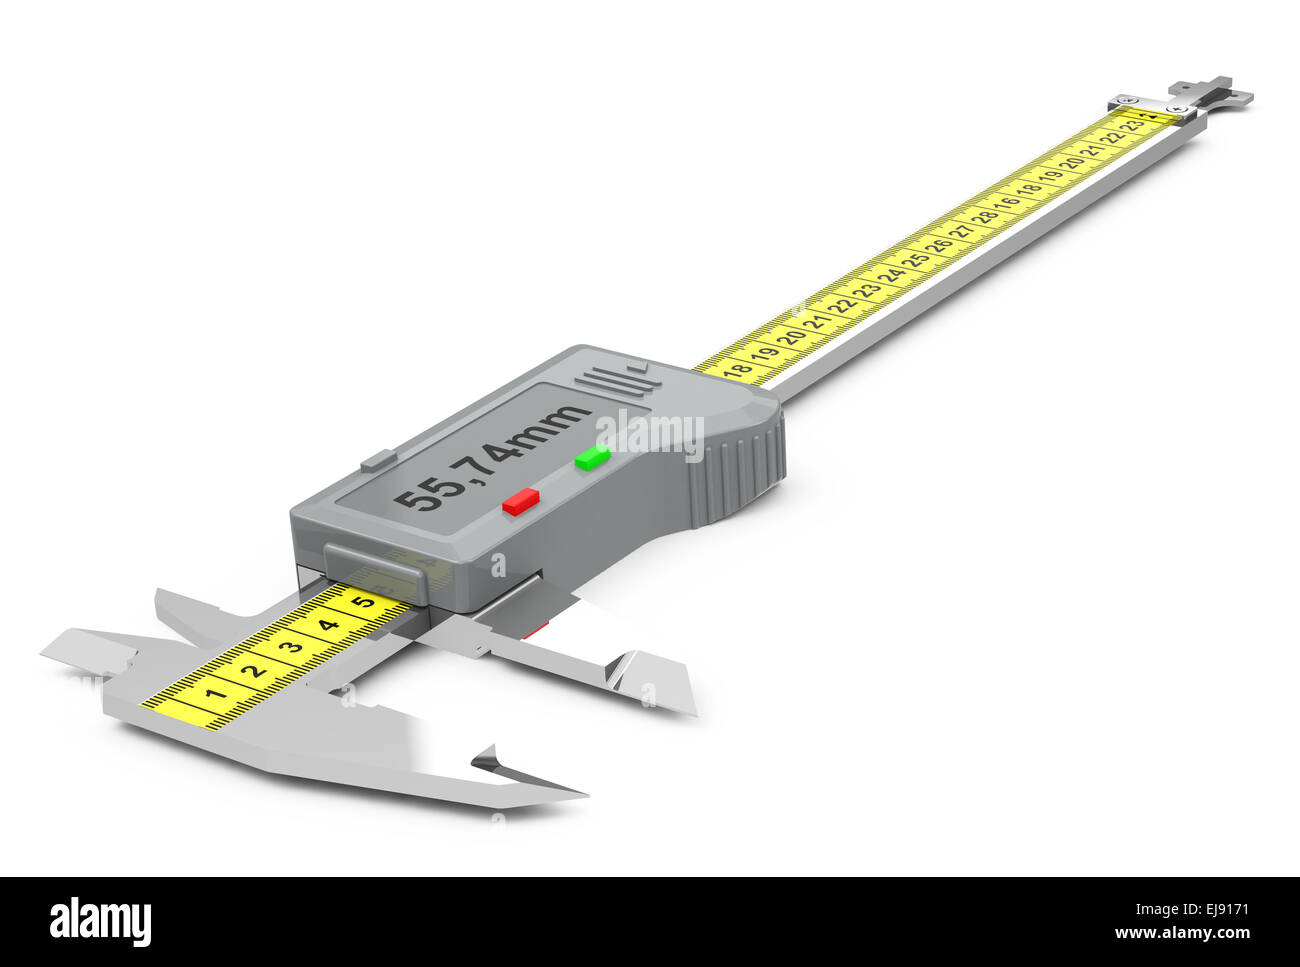 the vernier caliper - Stock Image